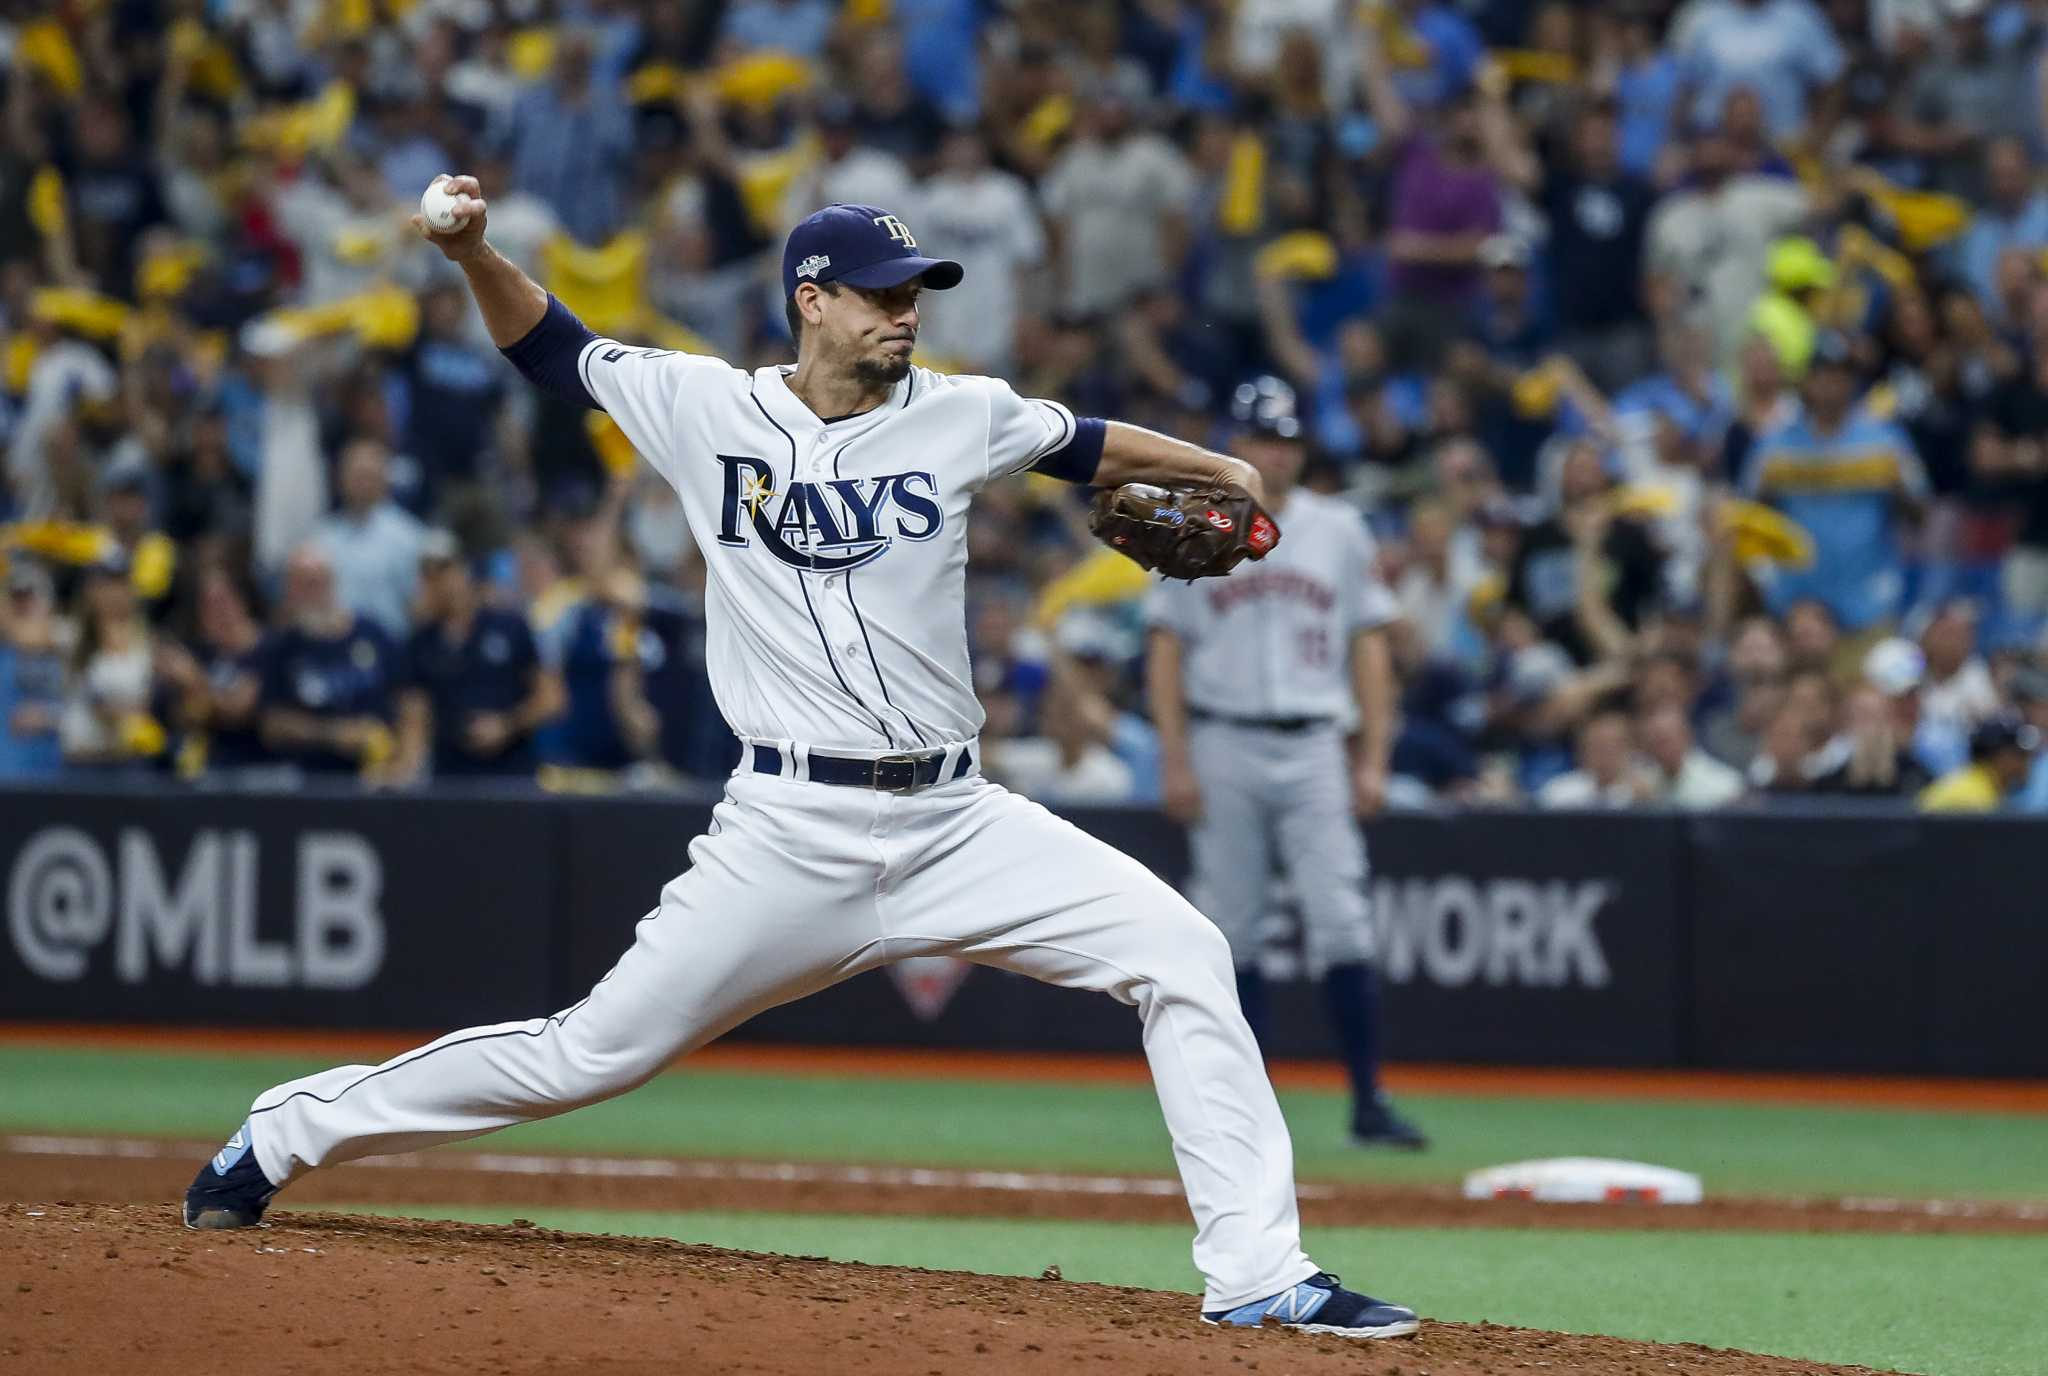 astros to face charlie morton in alcs game 2 houstonchronicle com https www houstonchronicle com texas sports nation astros tickets article charlie morton astros rays alcs game 2 15638003 php